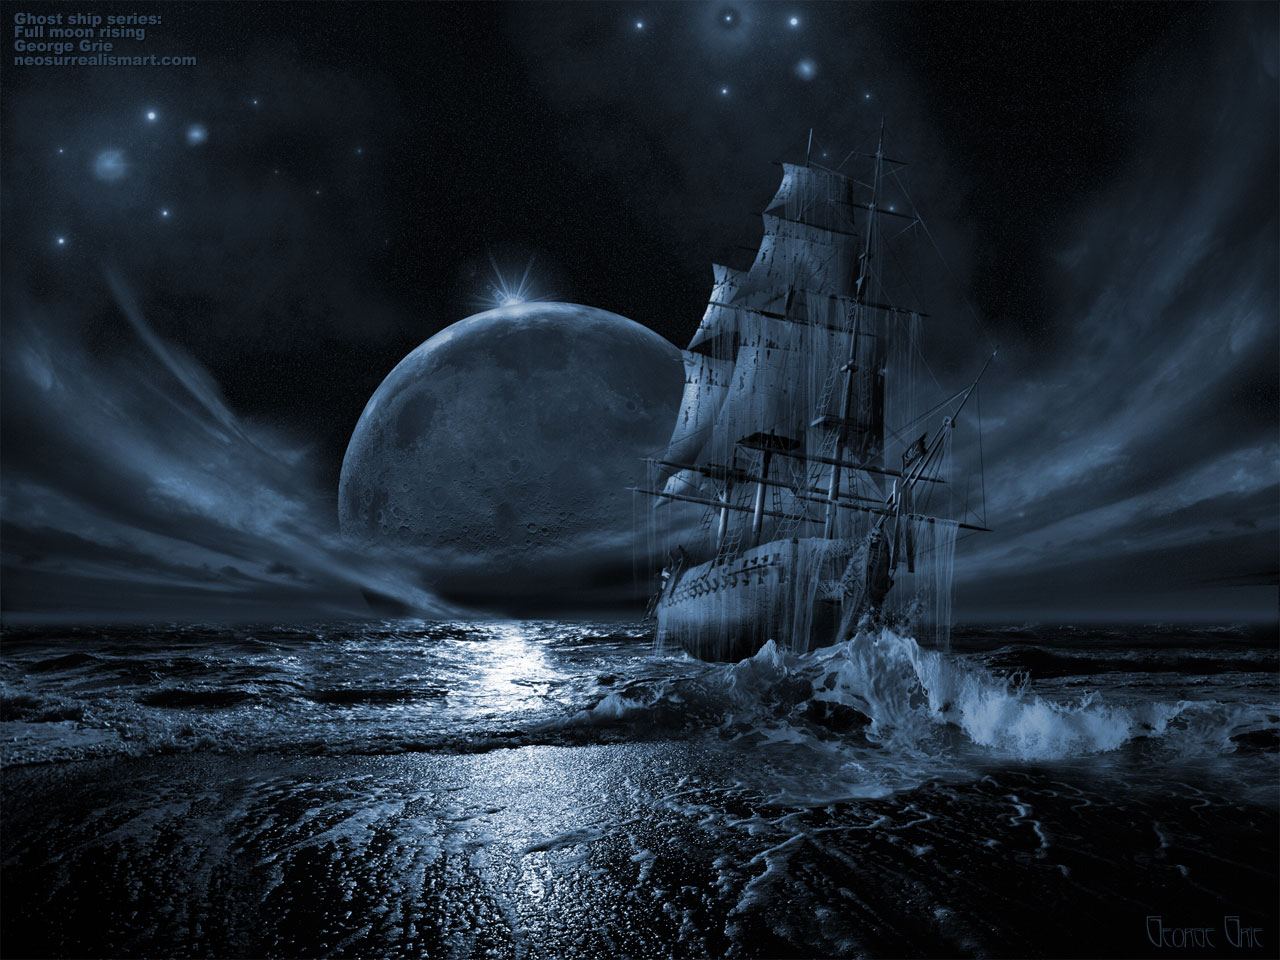 Ghostly clipart real Art Pirate Photos Ship online